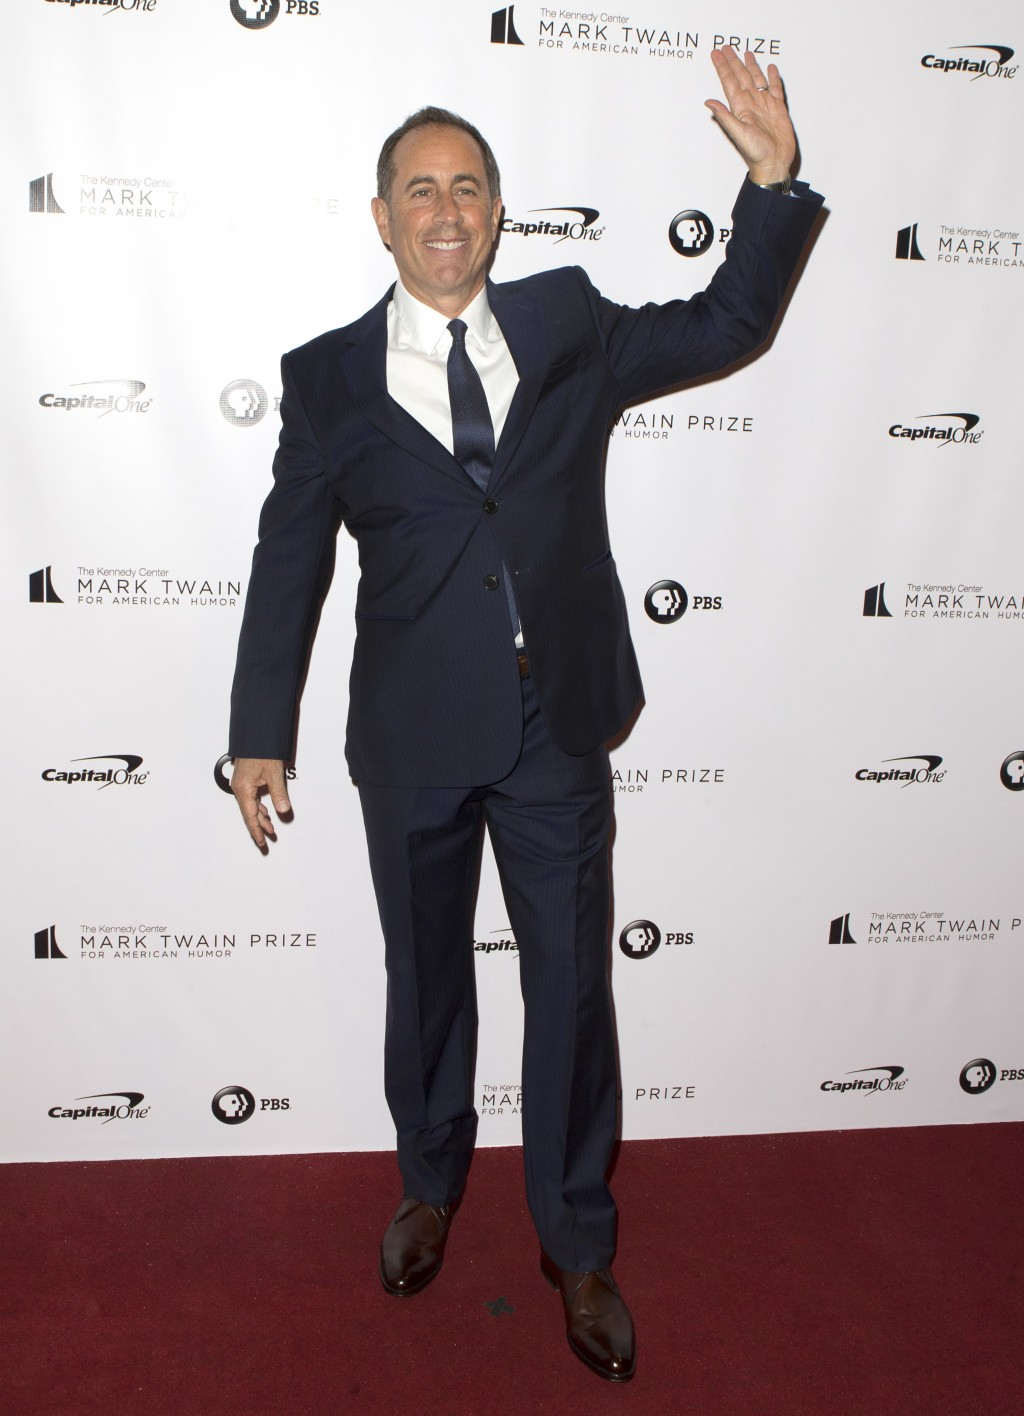 Jerry Seinfeld arrives at the Kennedy Center for the Performing Arts for the 21st Annual Mark Twain Prize for American Humor presented to Julia Louis-...